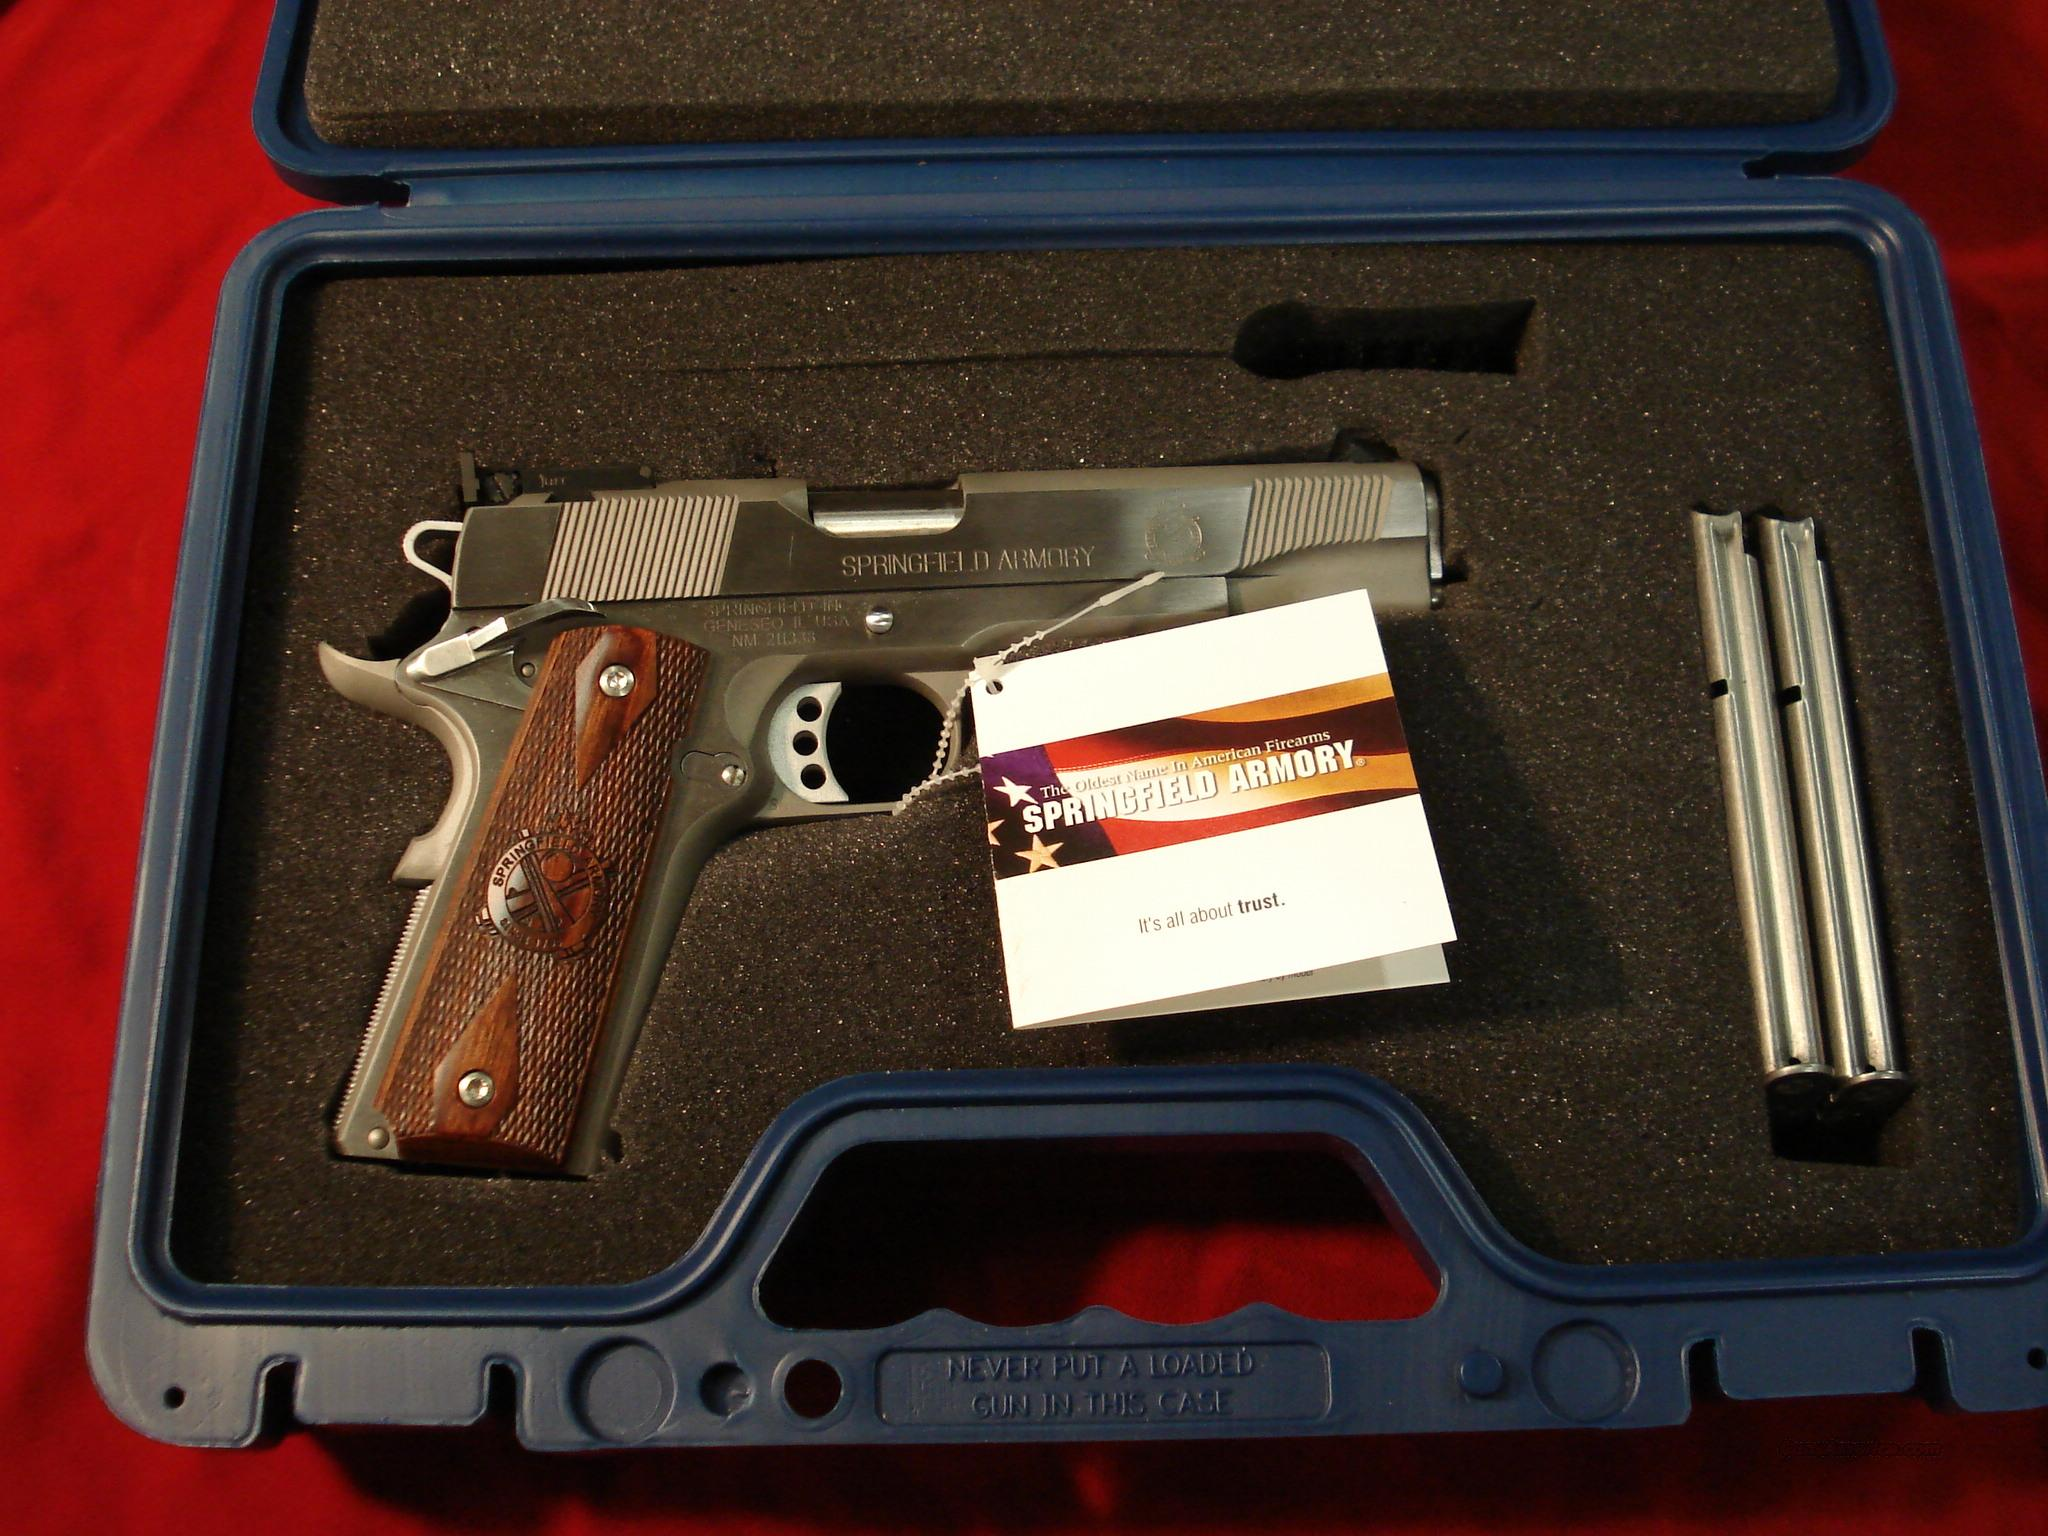 SPRINGFIELD ARMORY STAINLESS 9MM LOADED ADJ. SIGHTS (PI9134LP)   Guns > Pistols > Springfield Armory Pistols > 1911 Type